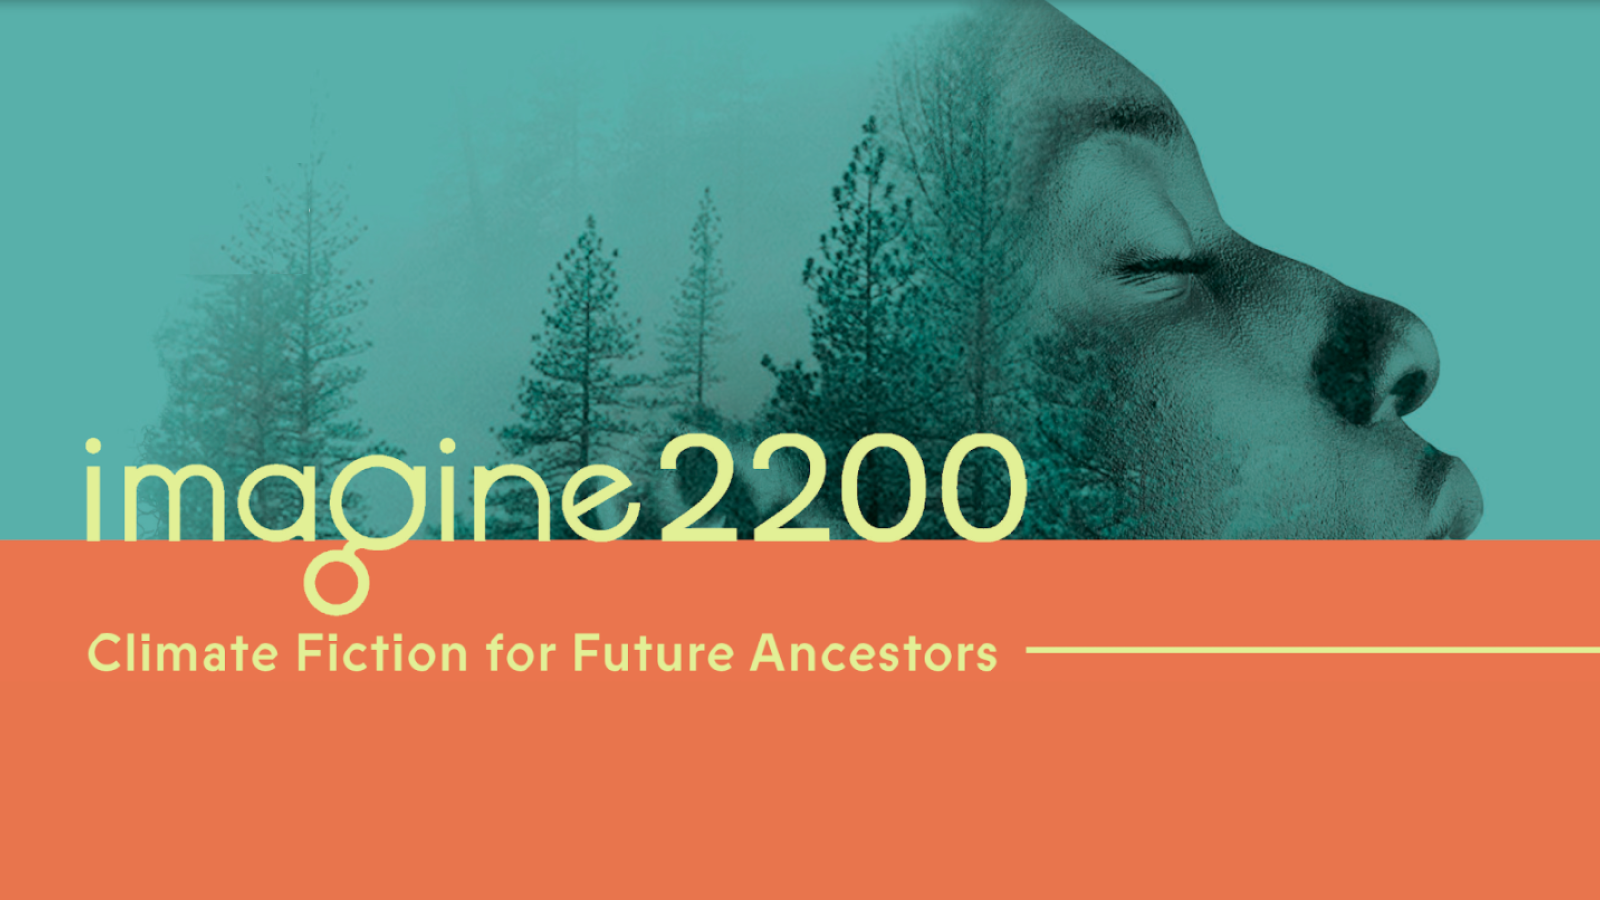 Imagine 2200: Climate fiction for future ancestors